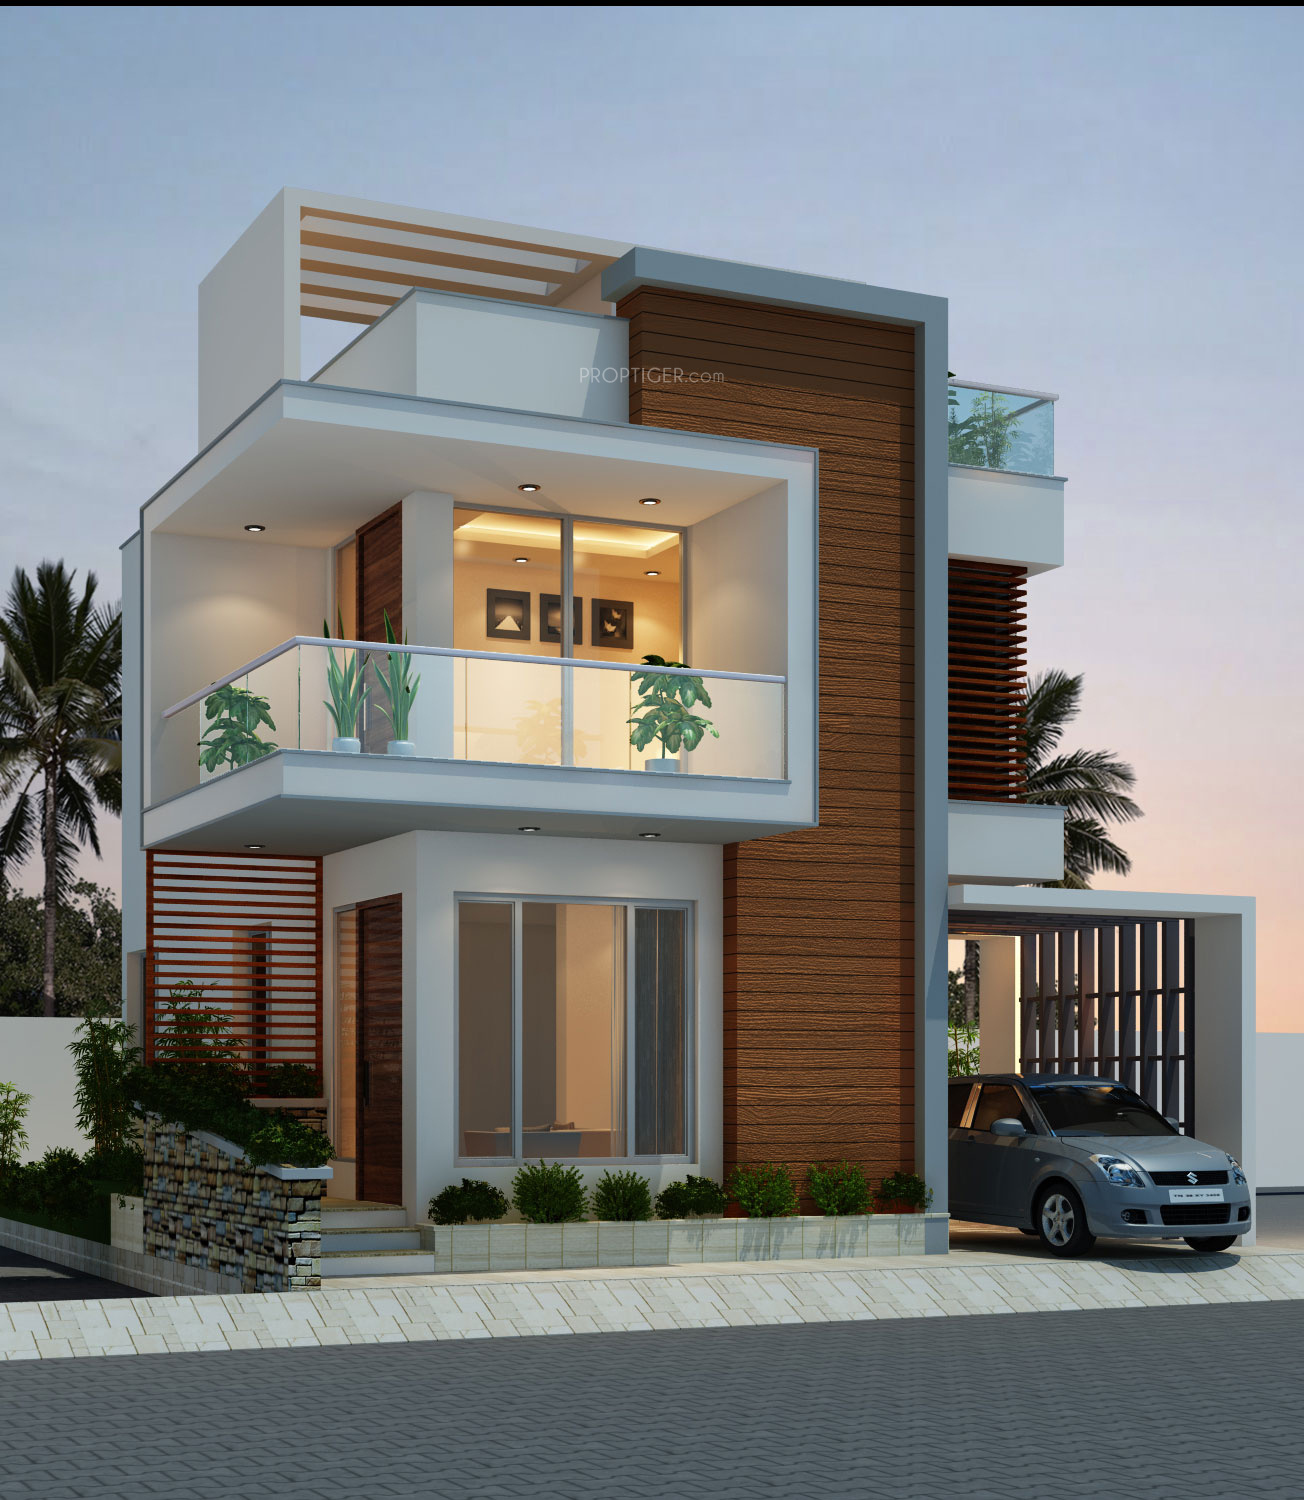 Headway fortune residency villa in perungalathur chennai for Contemporary home elevations